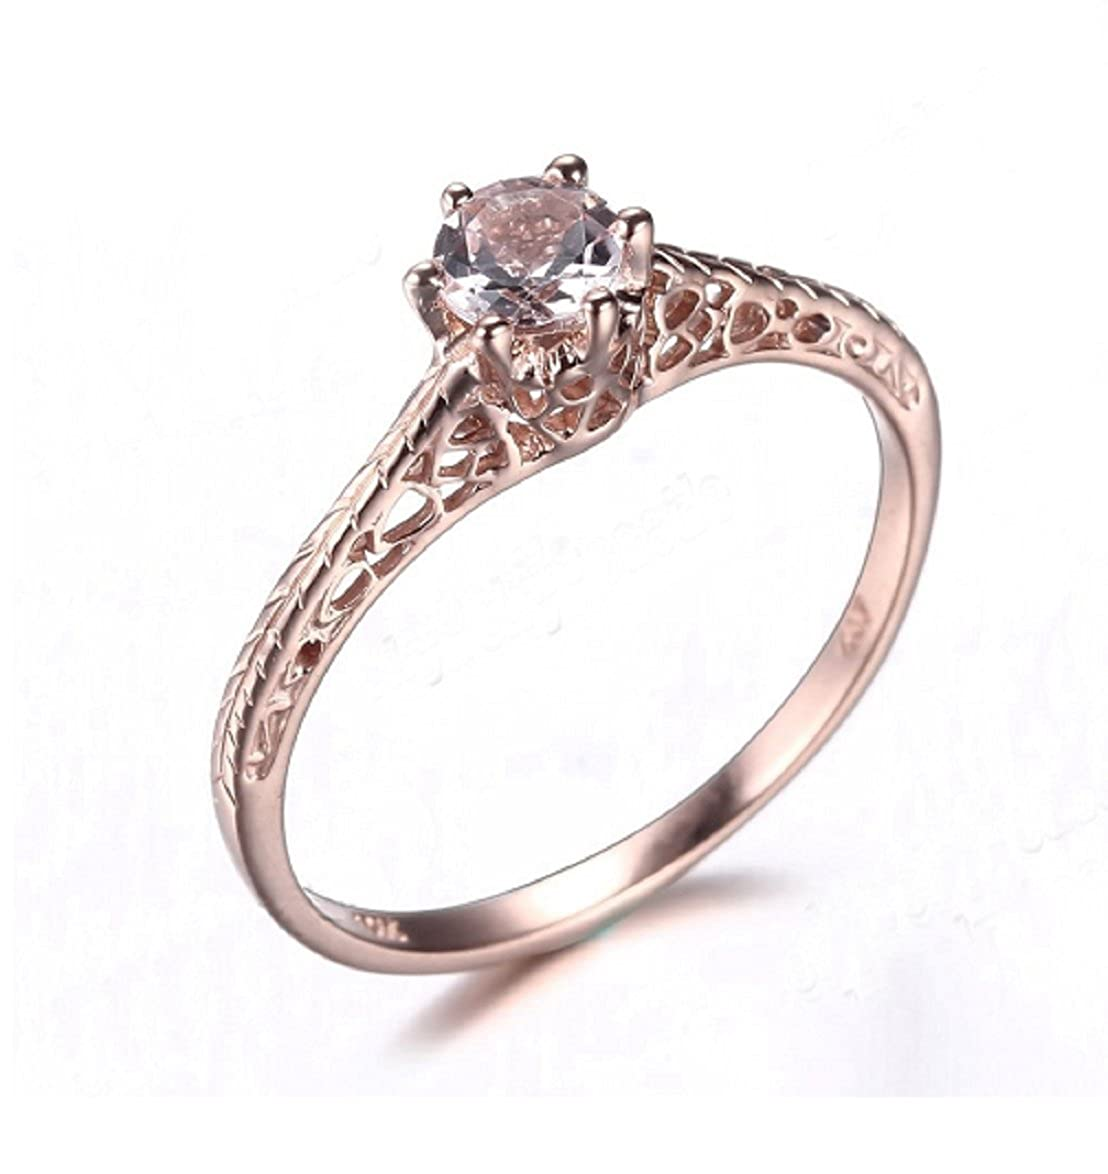 Amazon Gowe Ladies Art Deco Jewelry Ring Solid 10k Rose Gold Round Cut 6mm Morganite Antique Vintage Engagement Wedding: Art Deco Jewelry Wedding Rings At Websimilar.org